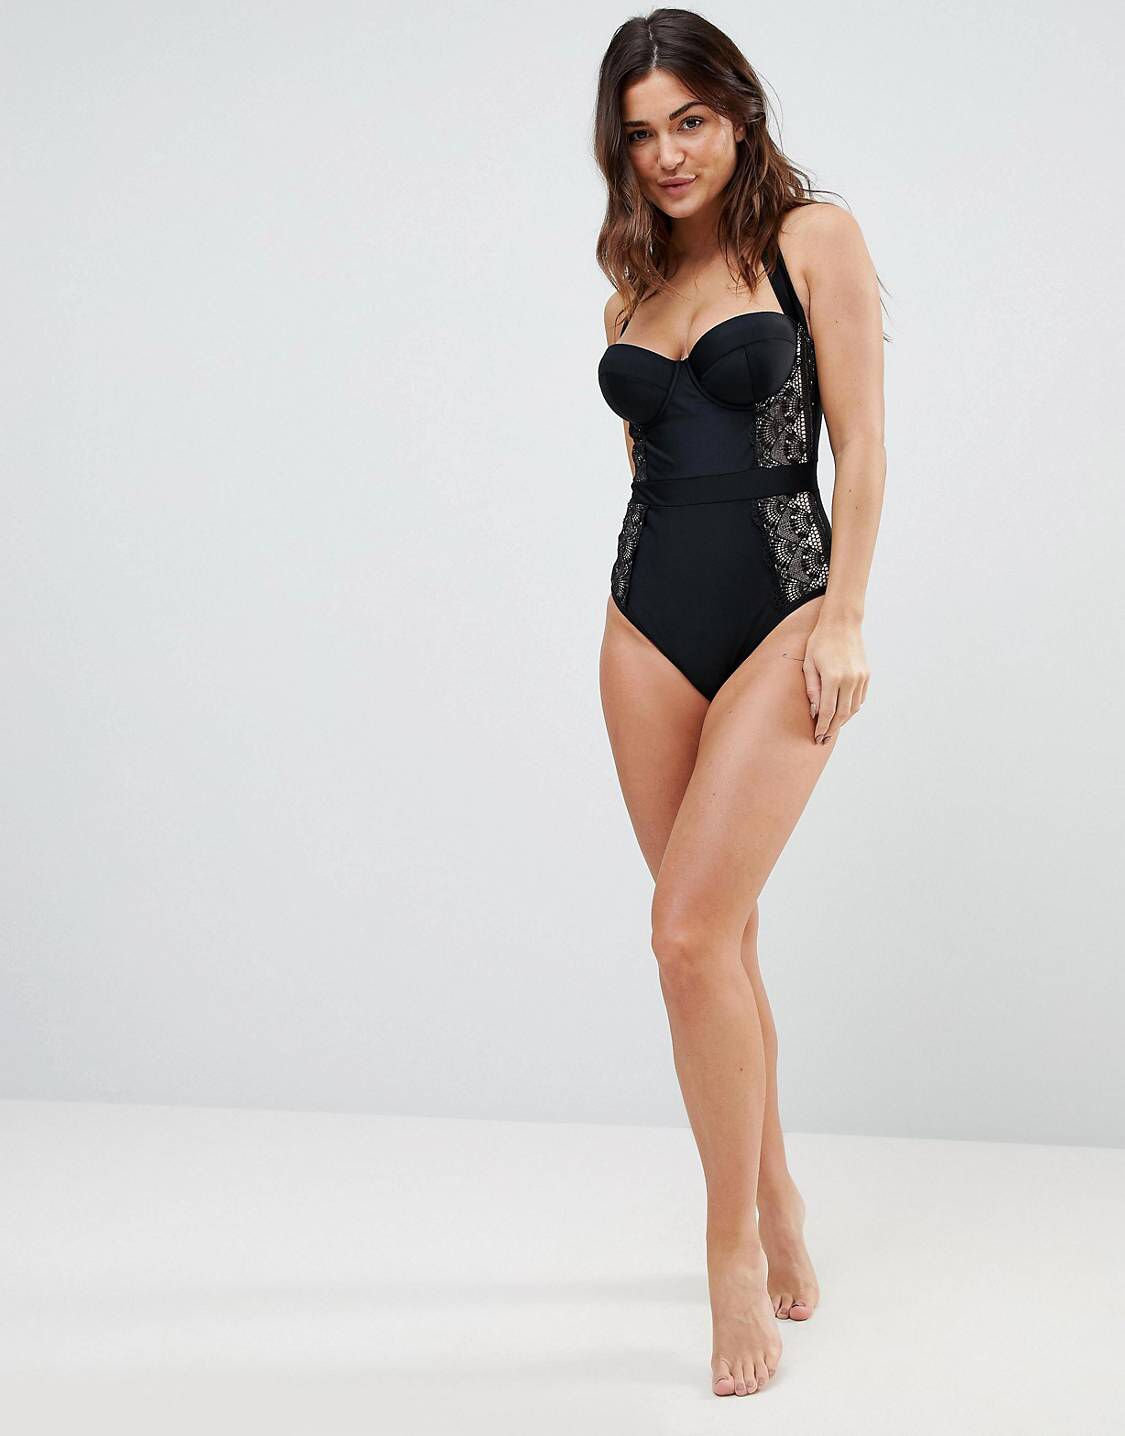 06273d1bf72 Wolf & Whistle Fuller Bust Lace Swimsuit DD - G Cup in 2019 | Wear ...